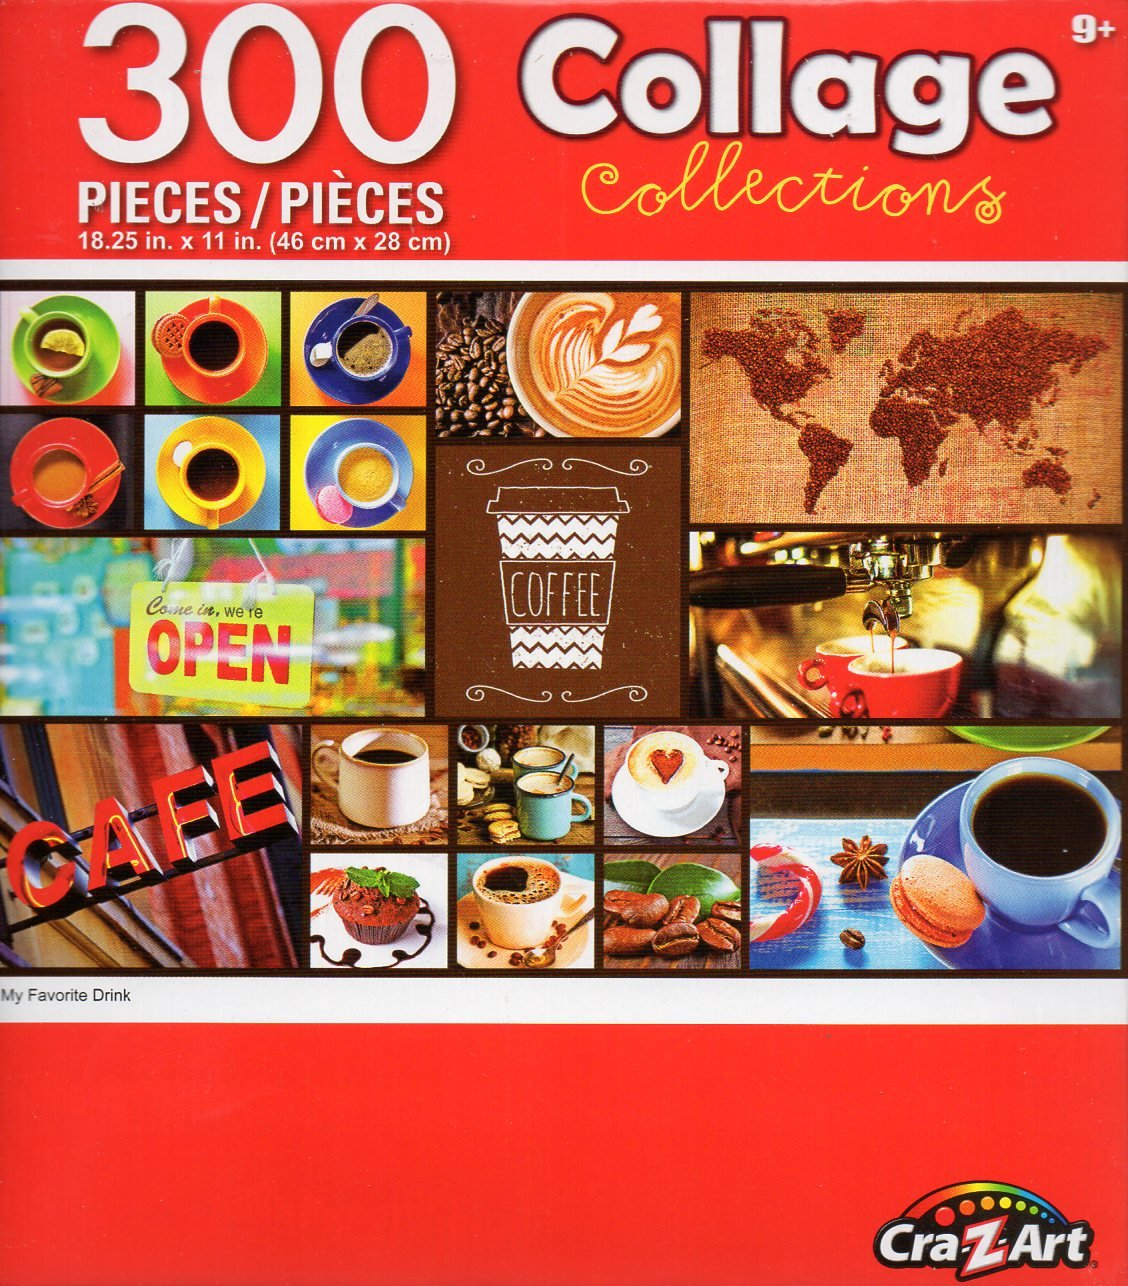 Cra-Z-Art Collage Collections - My Favorite Drink - 300 Piece Jigsaw Puzzle 001